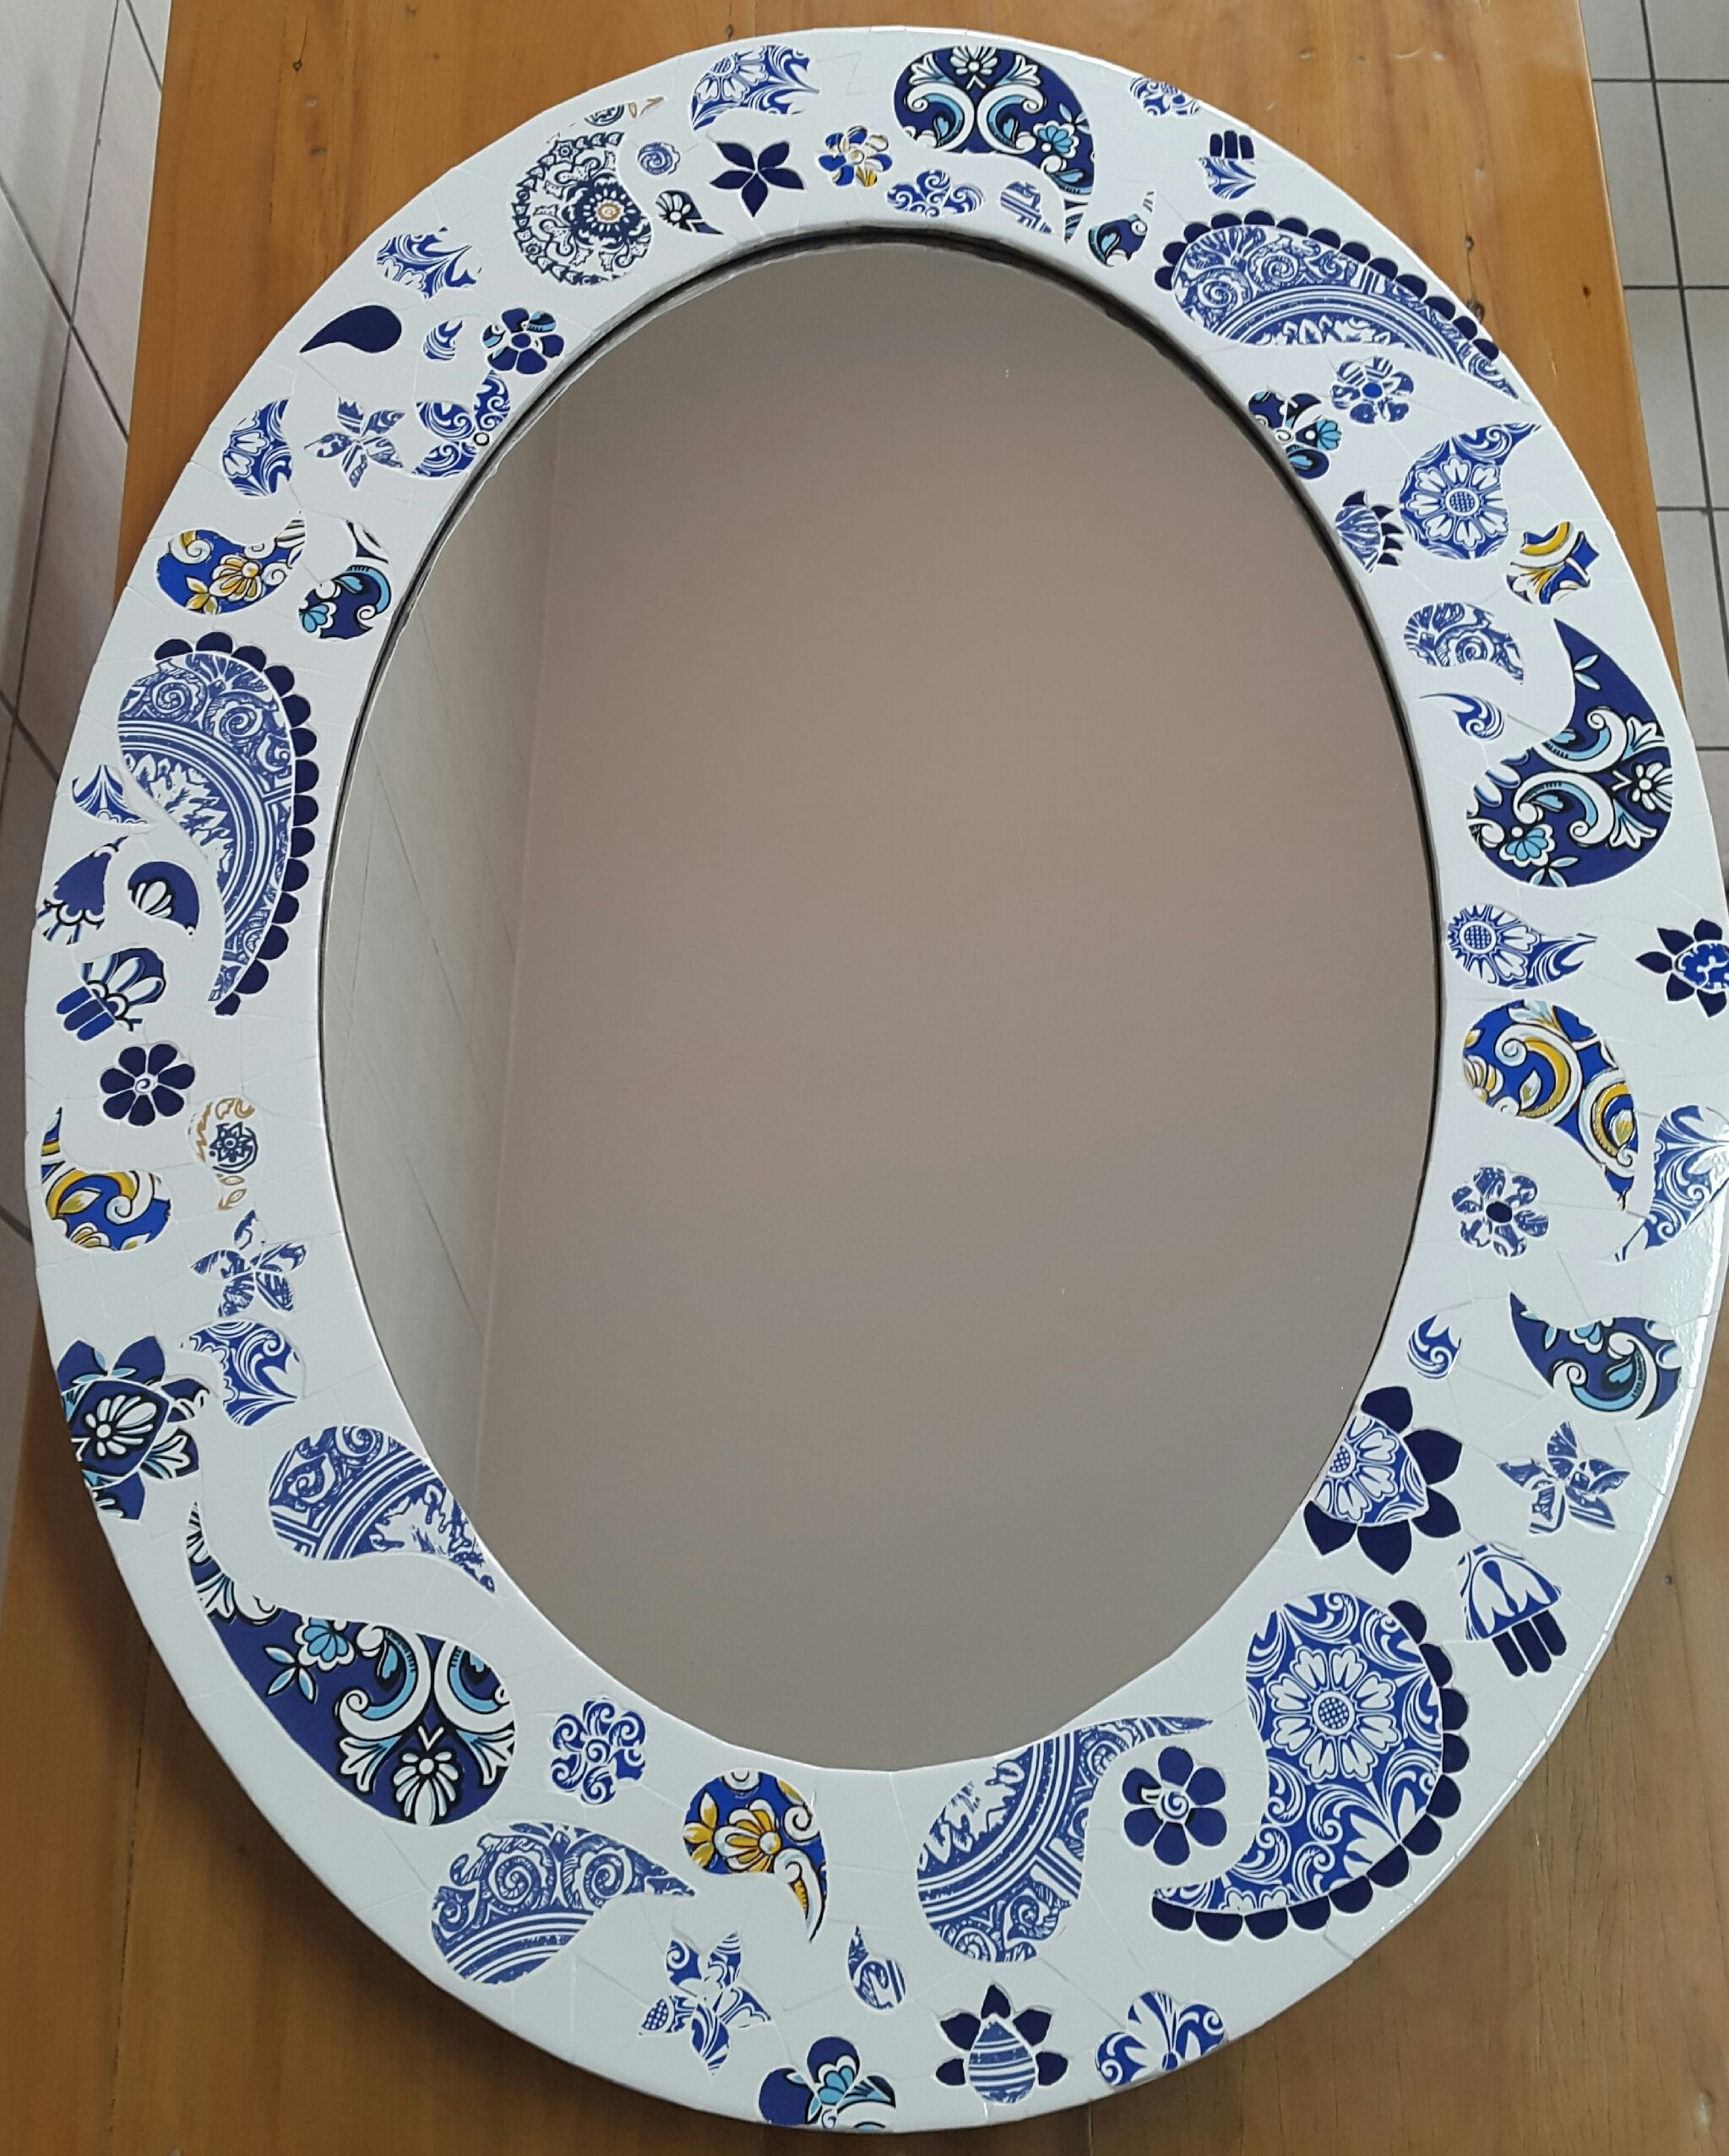 Mosaic mirror - paisley in blue and white tiles.